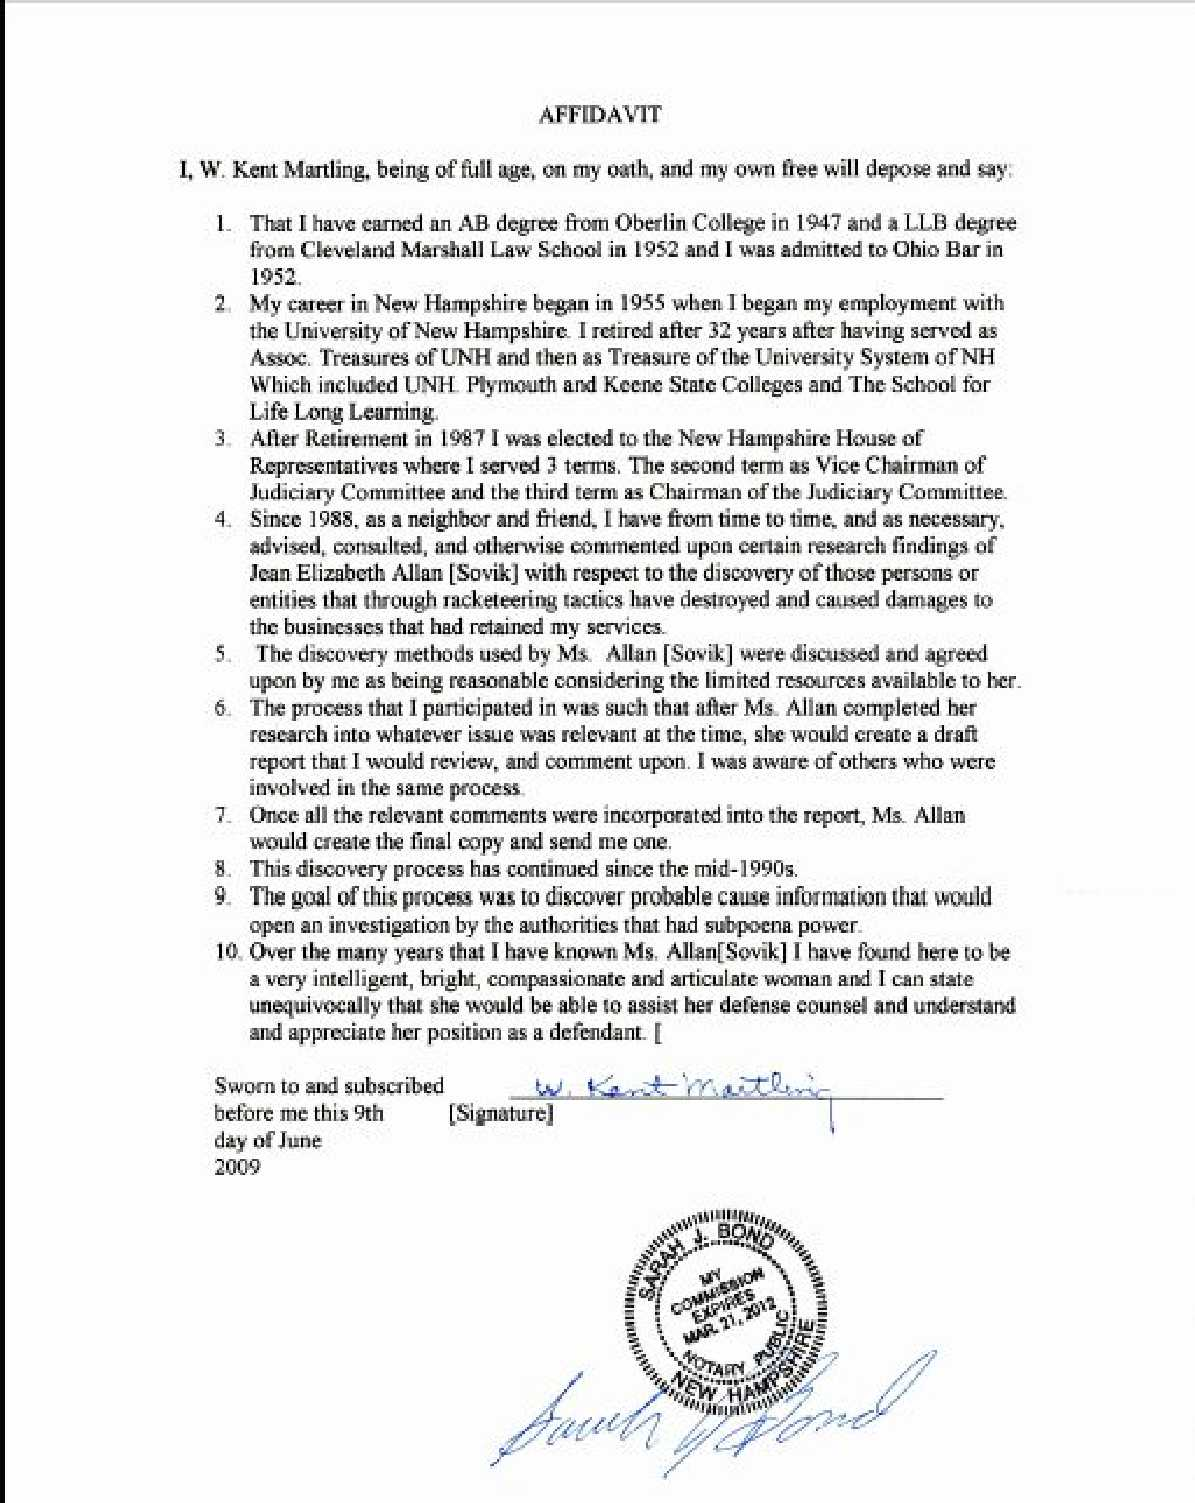 RE Complaint Petition of Licensee Misconduct of Dr – Affidavit Statement of Facts